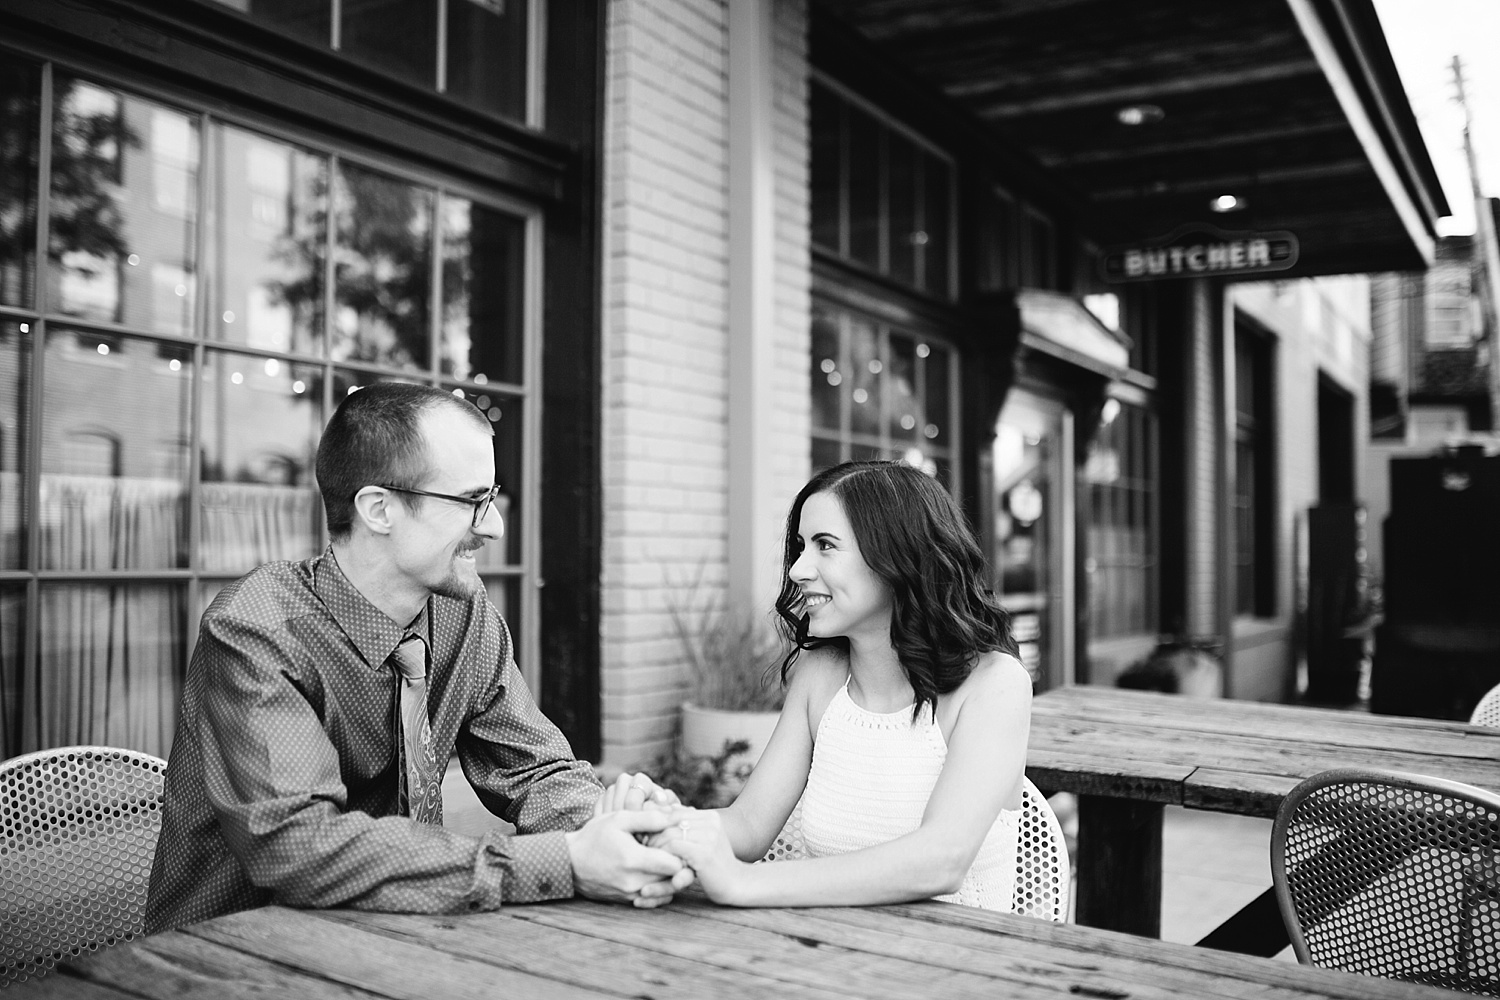 samanthaandrew_baltimore_engagement_session_image009.jpg